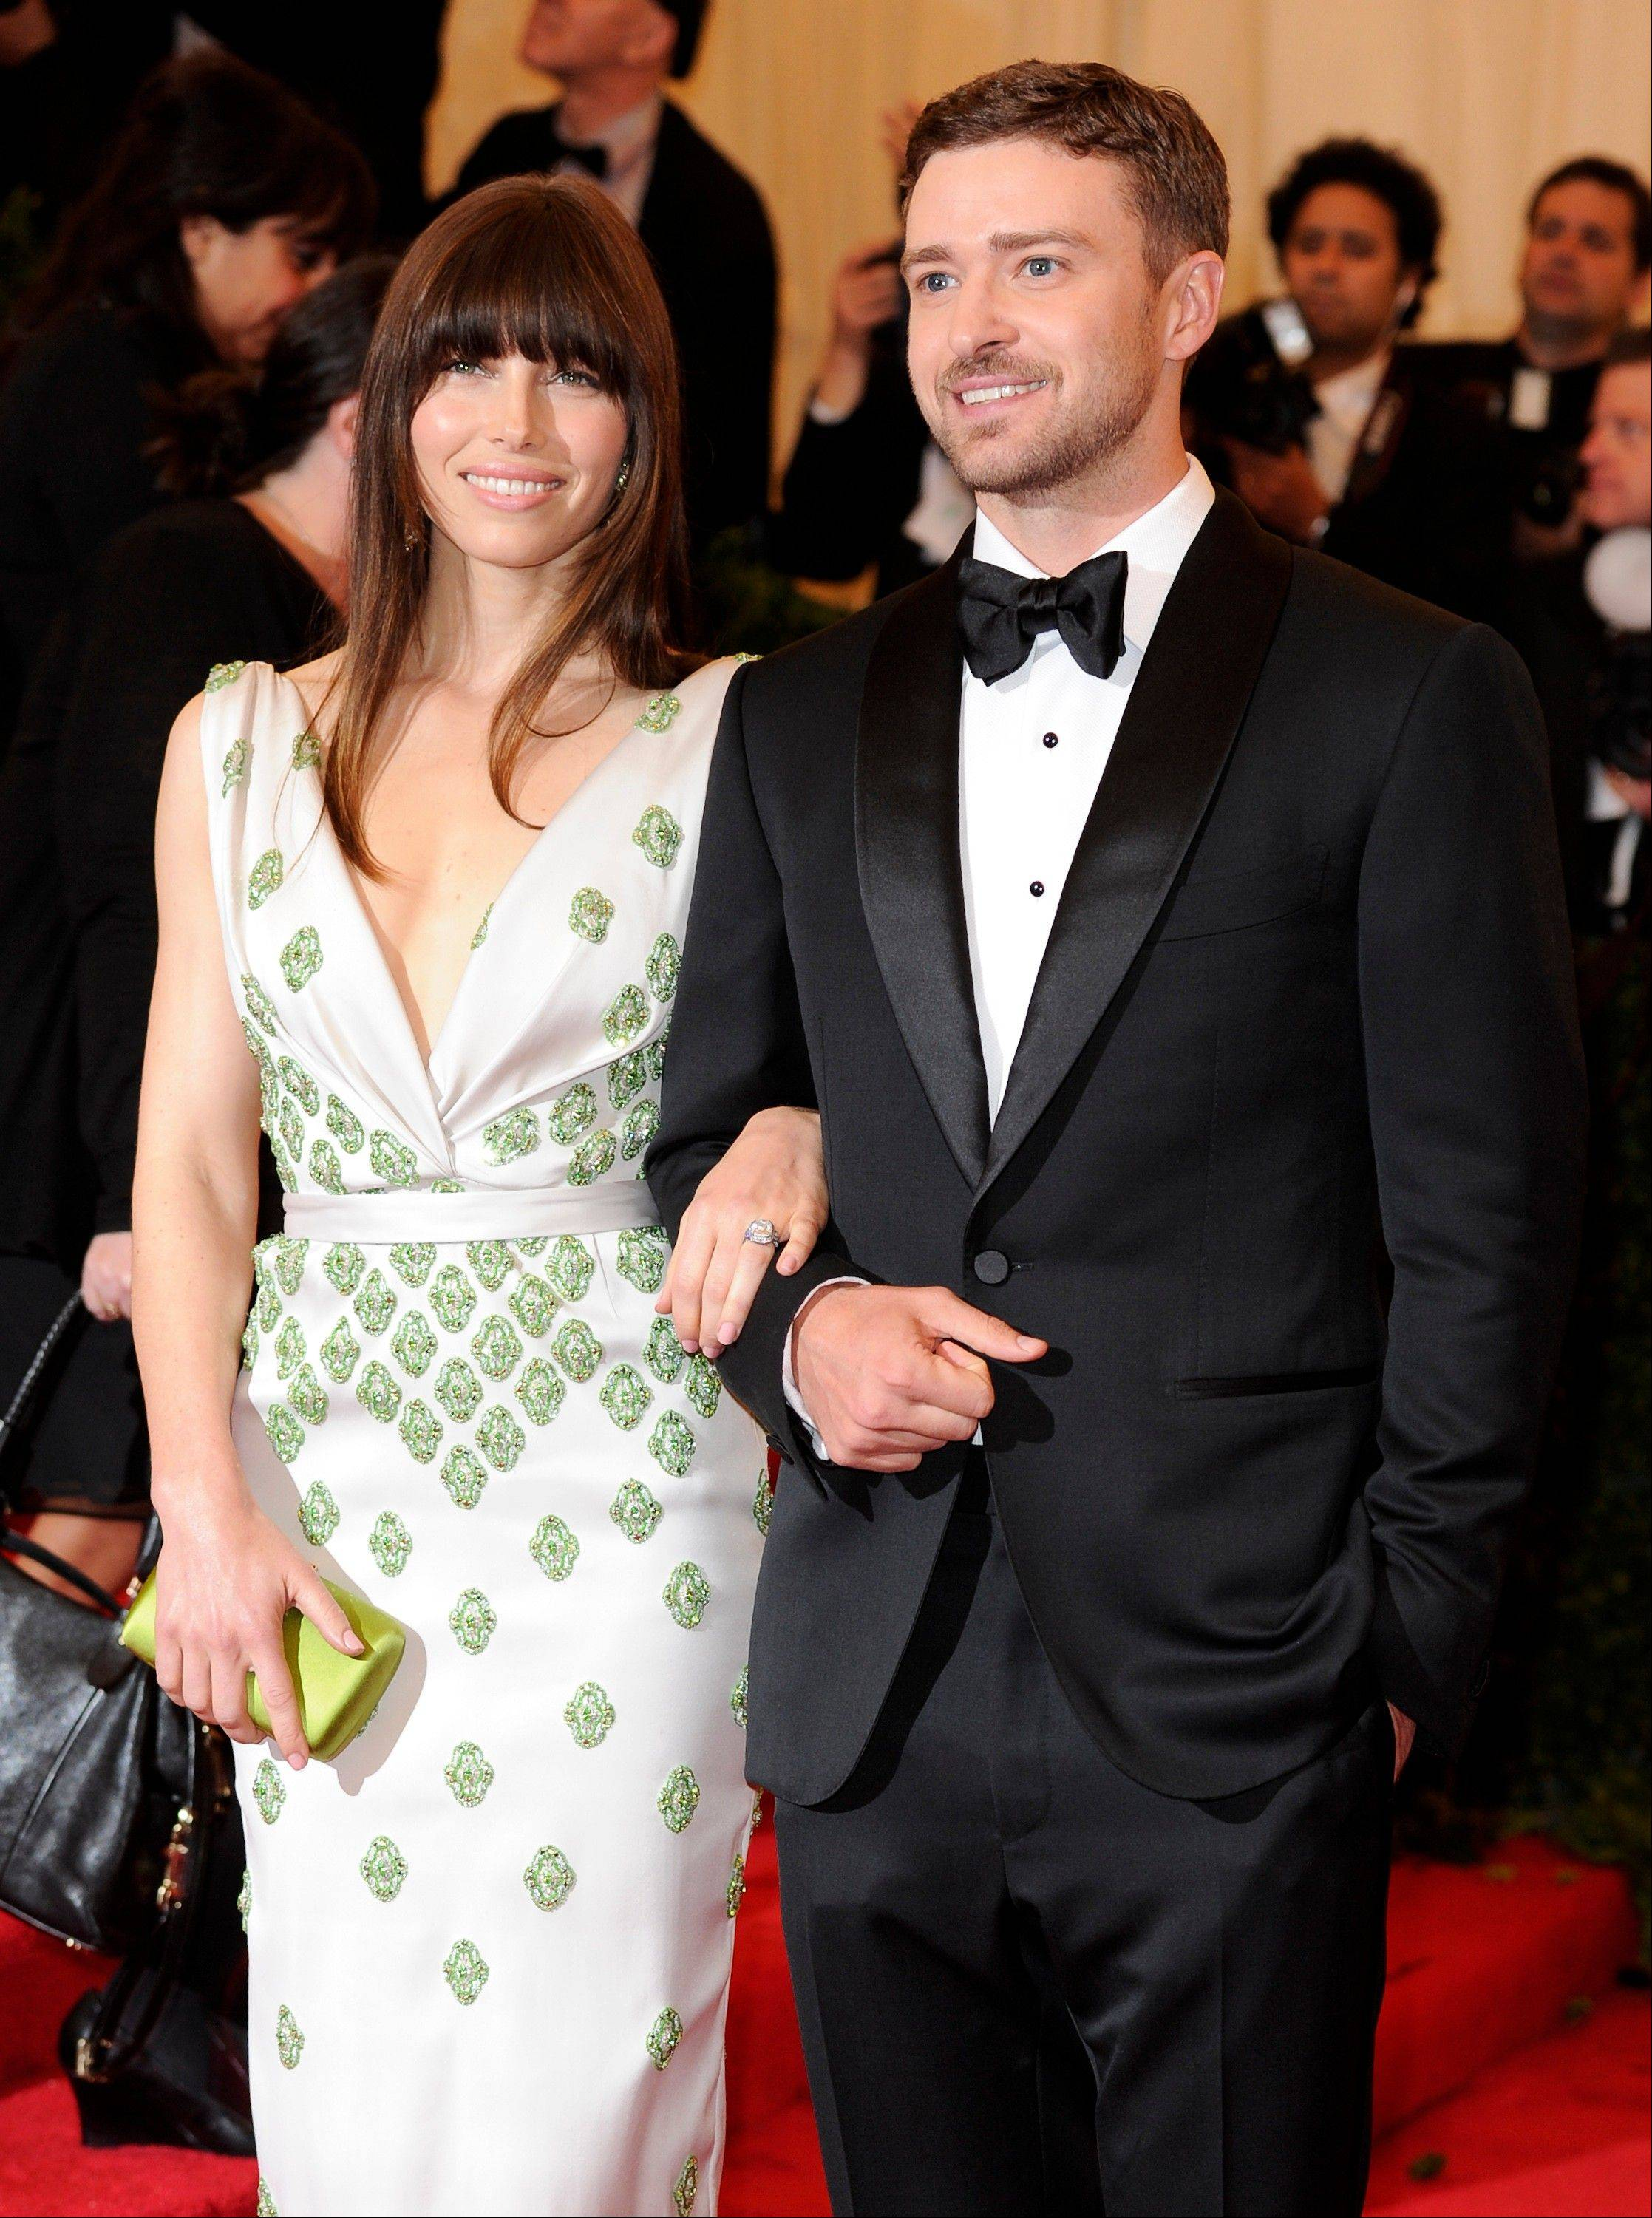 Associated PressGiven the weight of her engagement ring, it's no wonder that actress Jessica Biel needed to take the arm of her then-fiance, Justin Timberlake, during this 2012 gala benefit in New York.